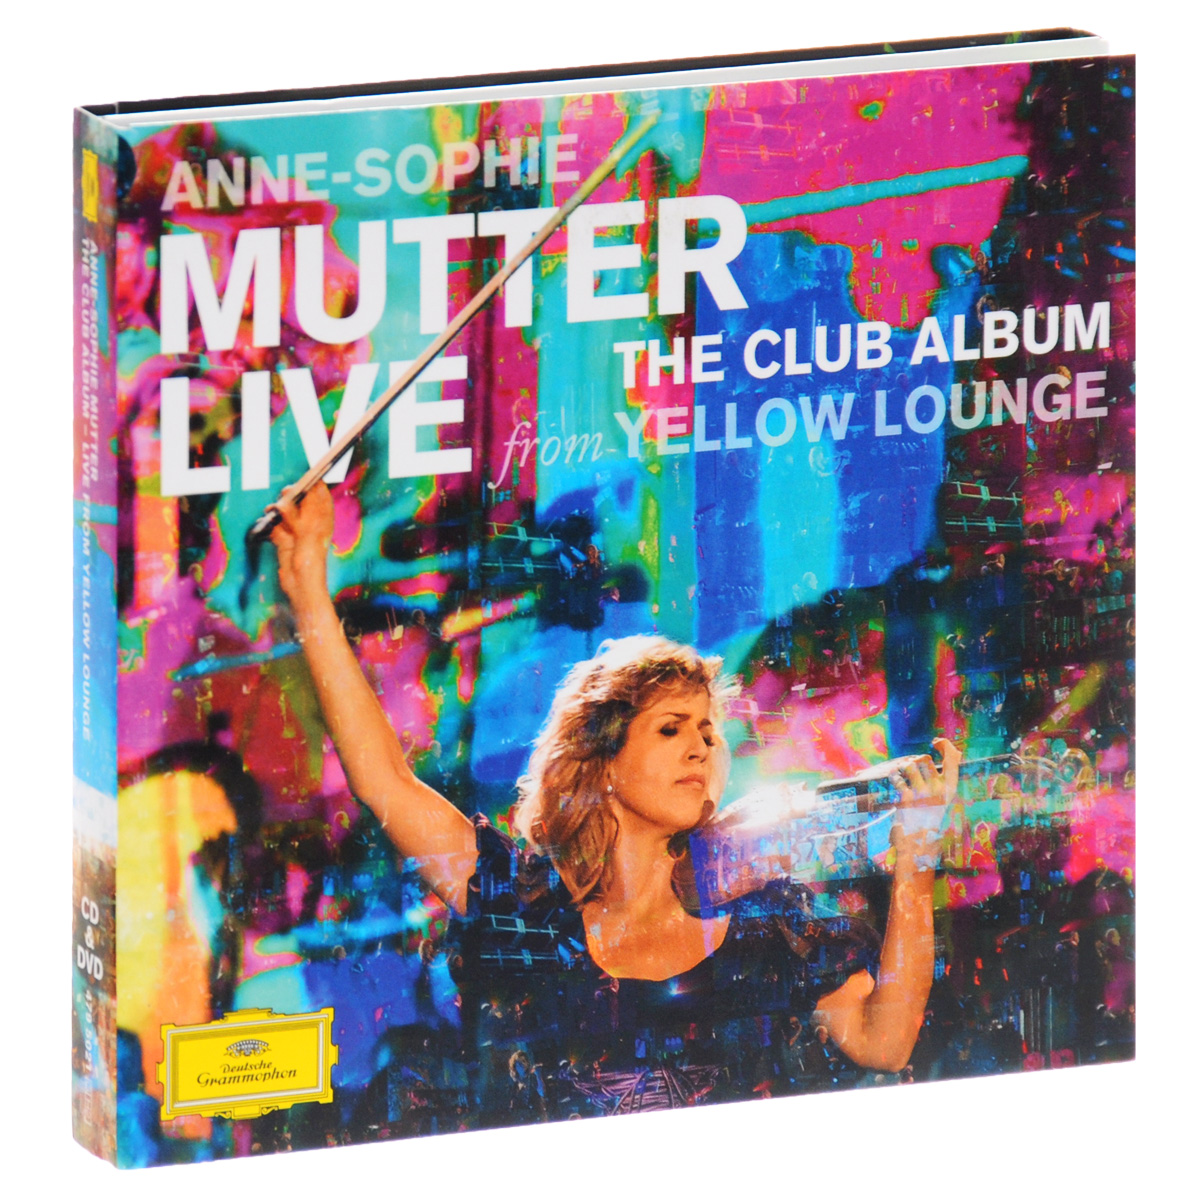 Анна-Софи Муттер,Noa Wildschut,Ламберт Оркис Anne-Sophie Mutter. Live From Yellow Lounge (CD + DVD) анна софи муттер ламберт оркис anne sophie mutter lambert orkis beethoven die violinsonaten 4 cd